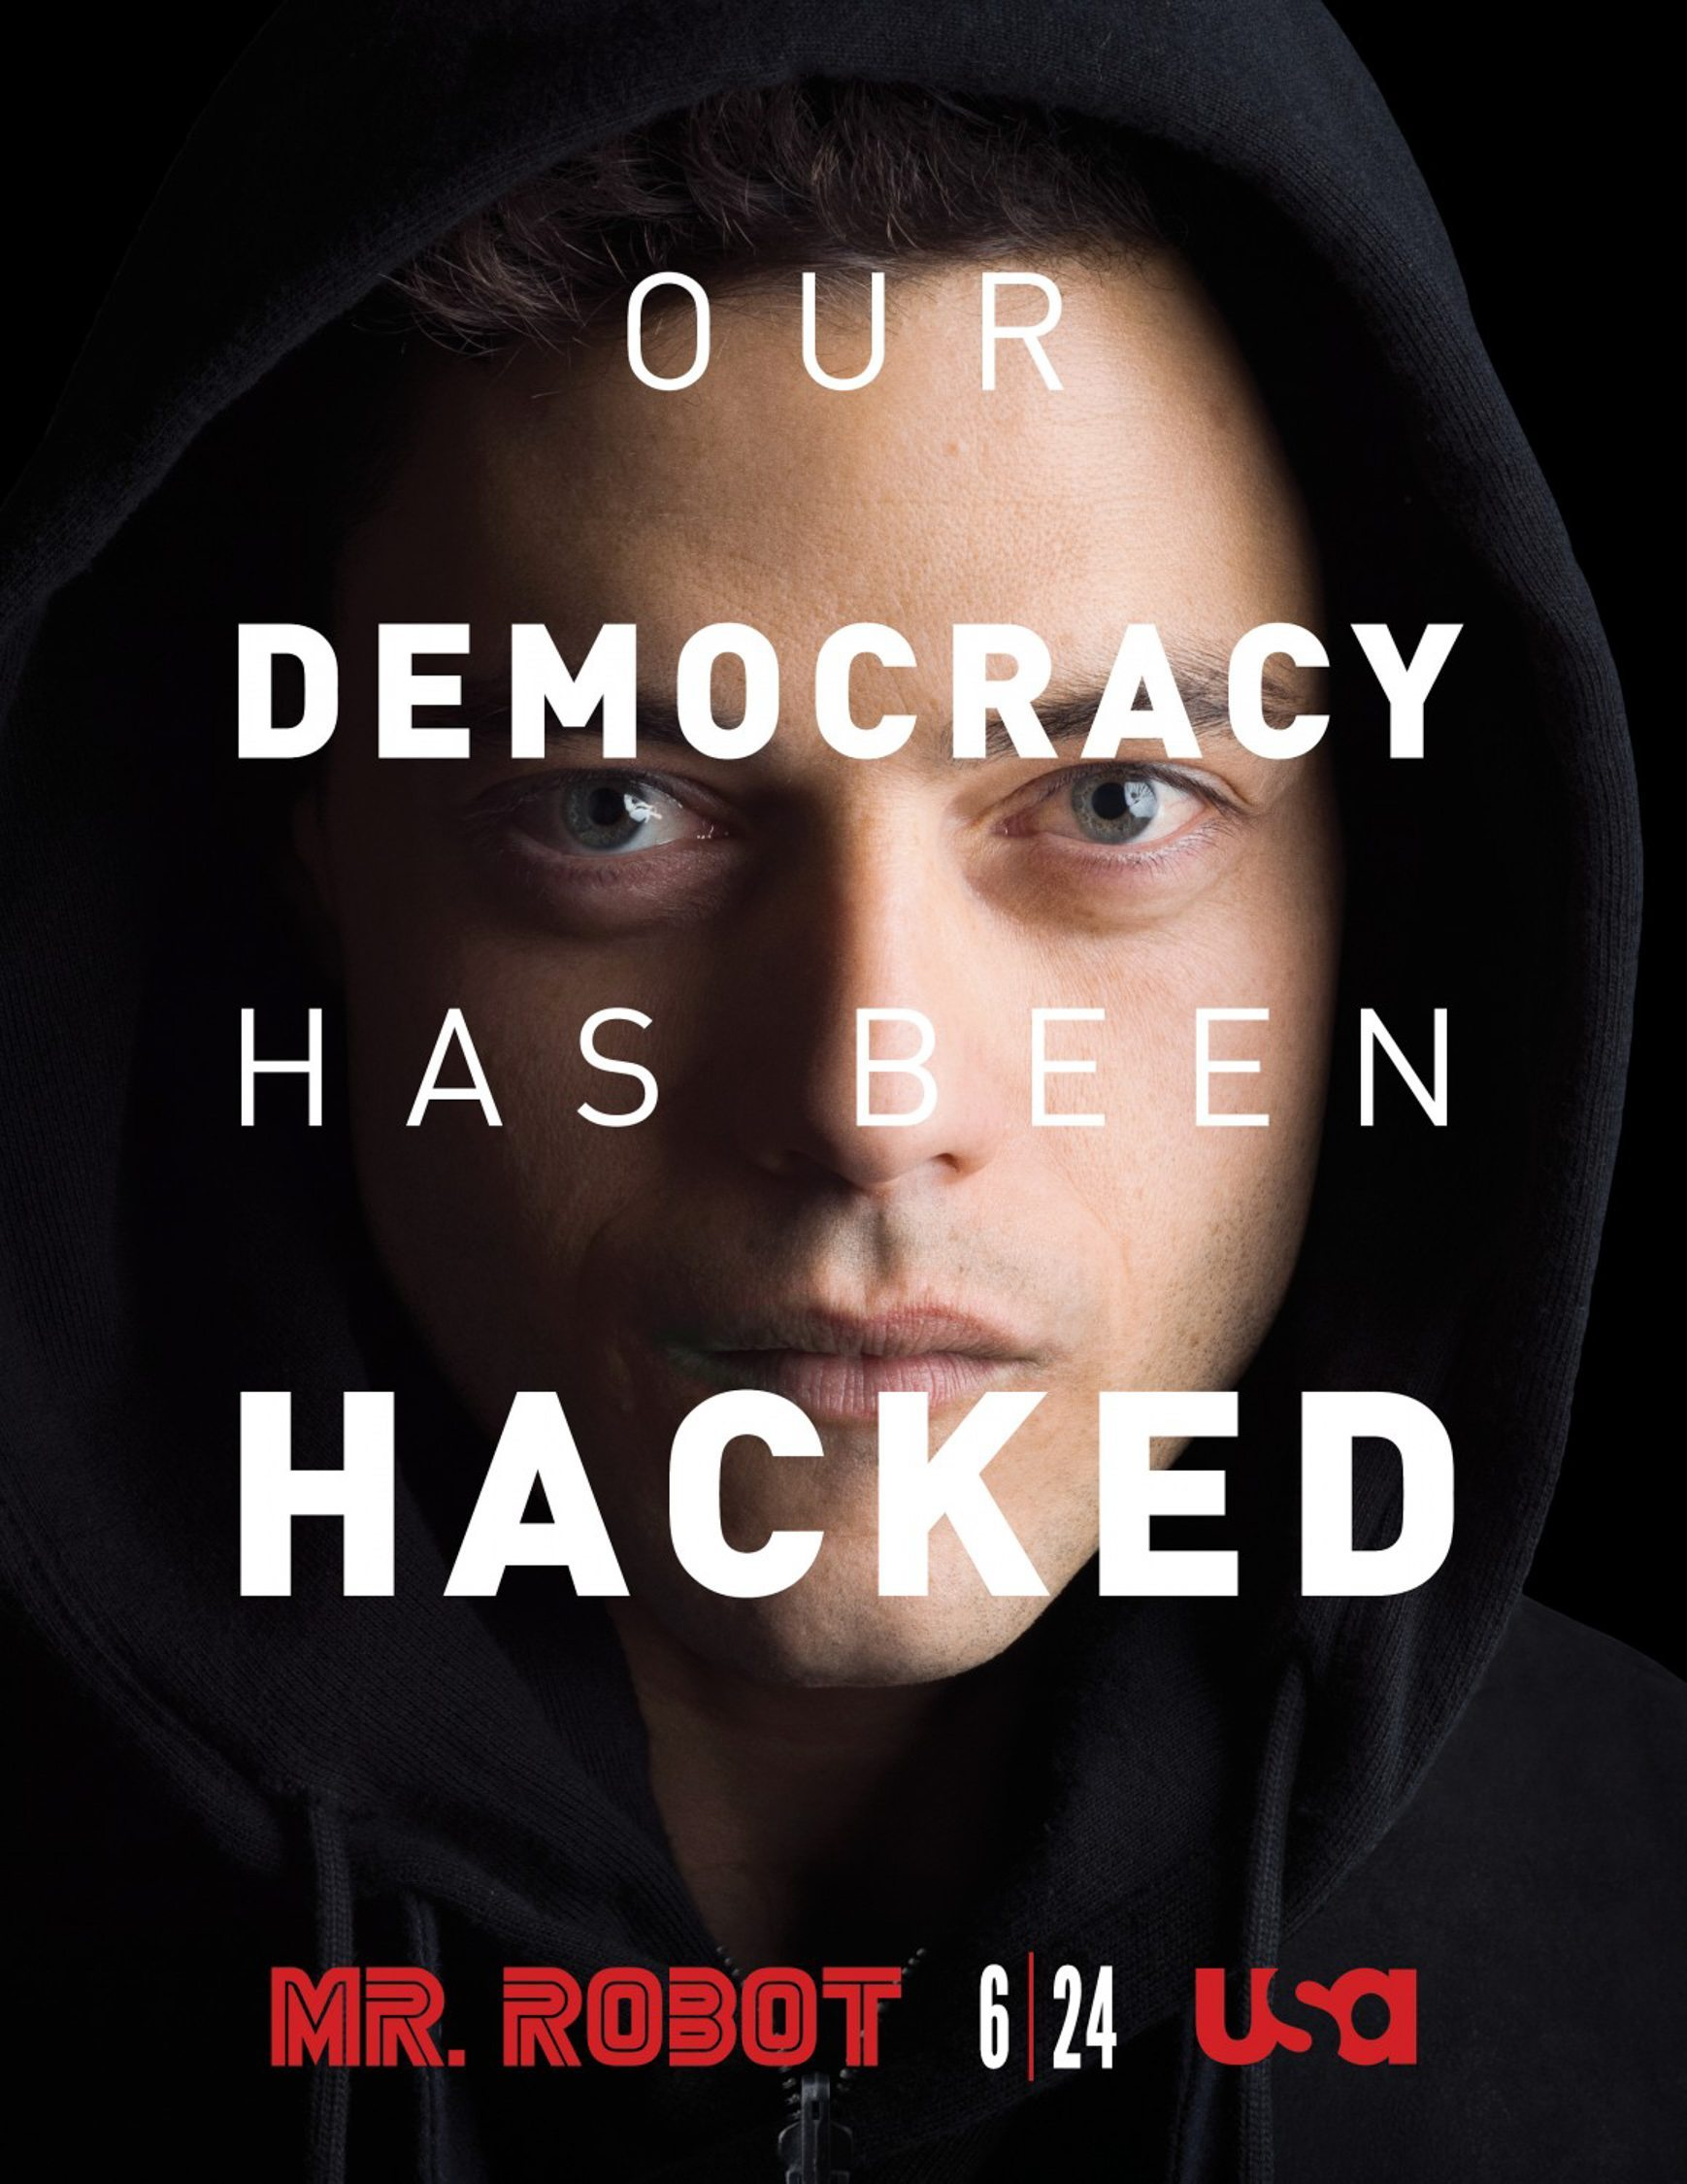 Mr. Robot (1159 x 1500) VoicesFILM.com